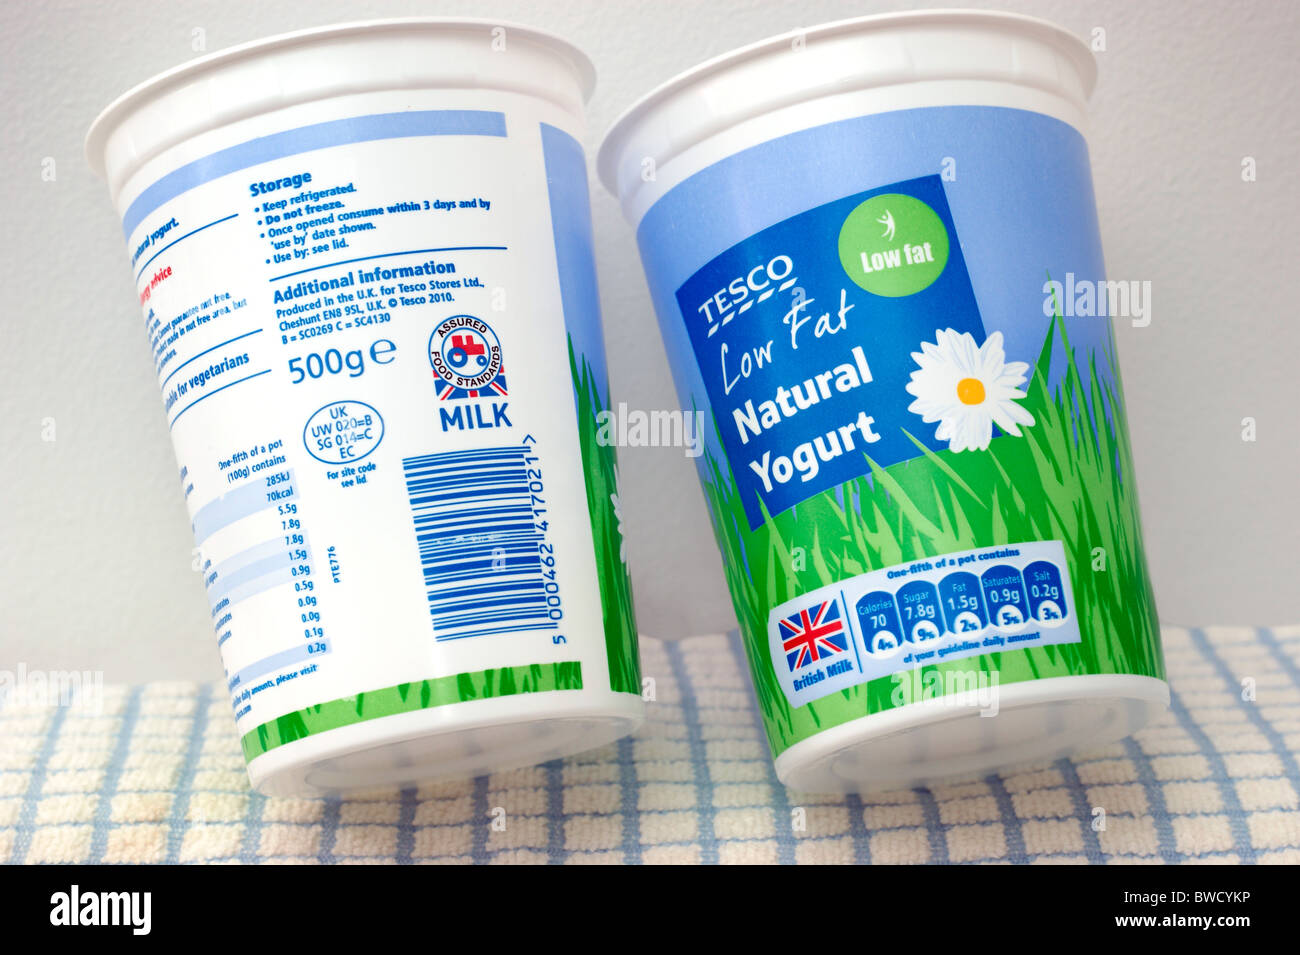 Tractor logo stock photos tractor logo stock images alamy tesco low fat natural yogurt with british logo the little red tractor symbol stock buycottarizona Gallery